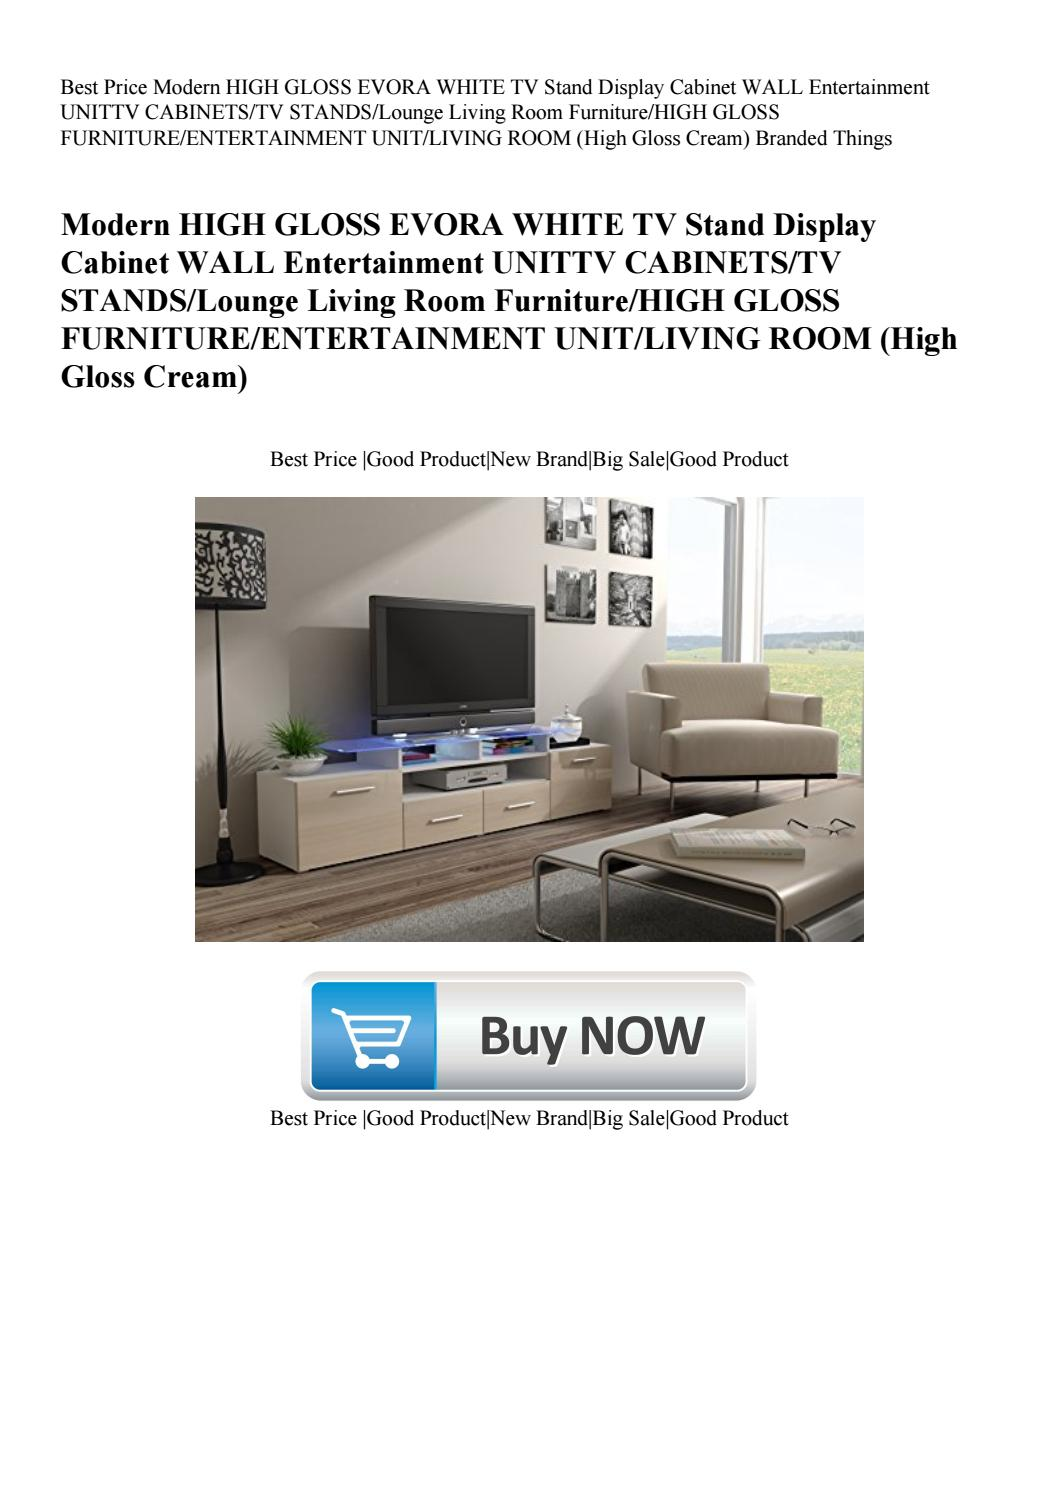 Best Price Modern High Gloss Evora White Tv Stand Display Cabinet Wall Entertainment Unittv Cabinet By Gianna Deleon Issuu